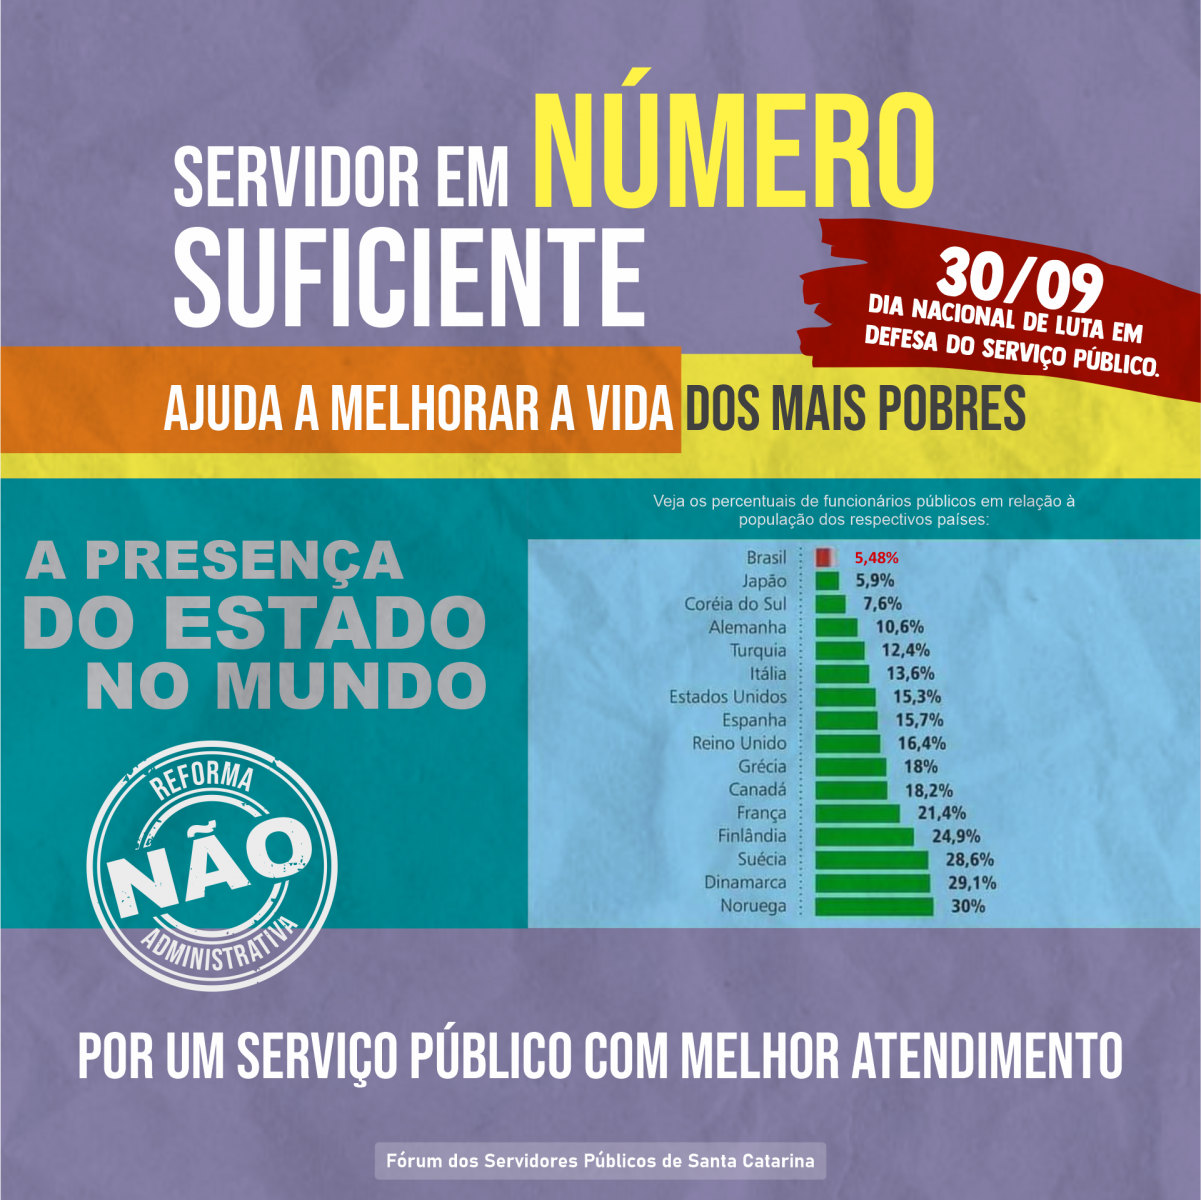 200926_02_card_redes_nmero